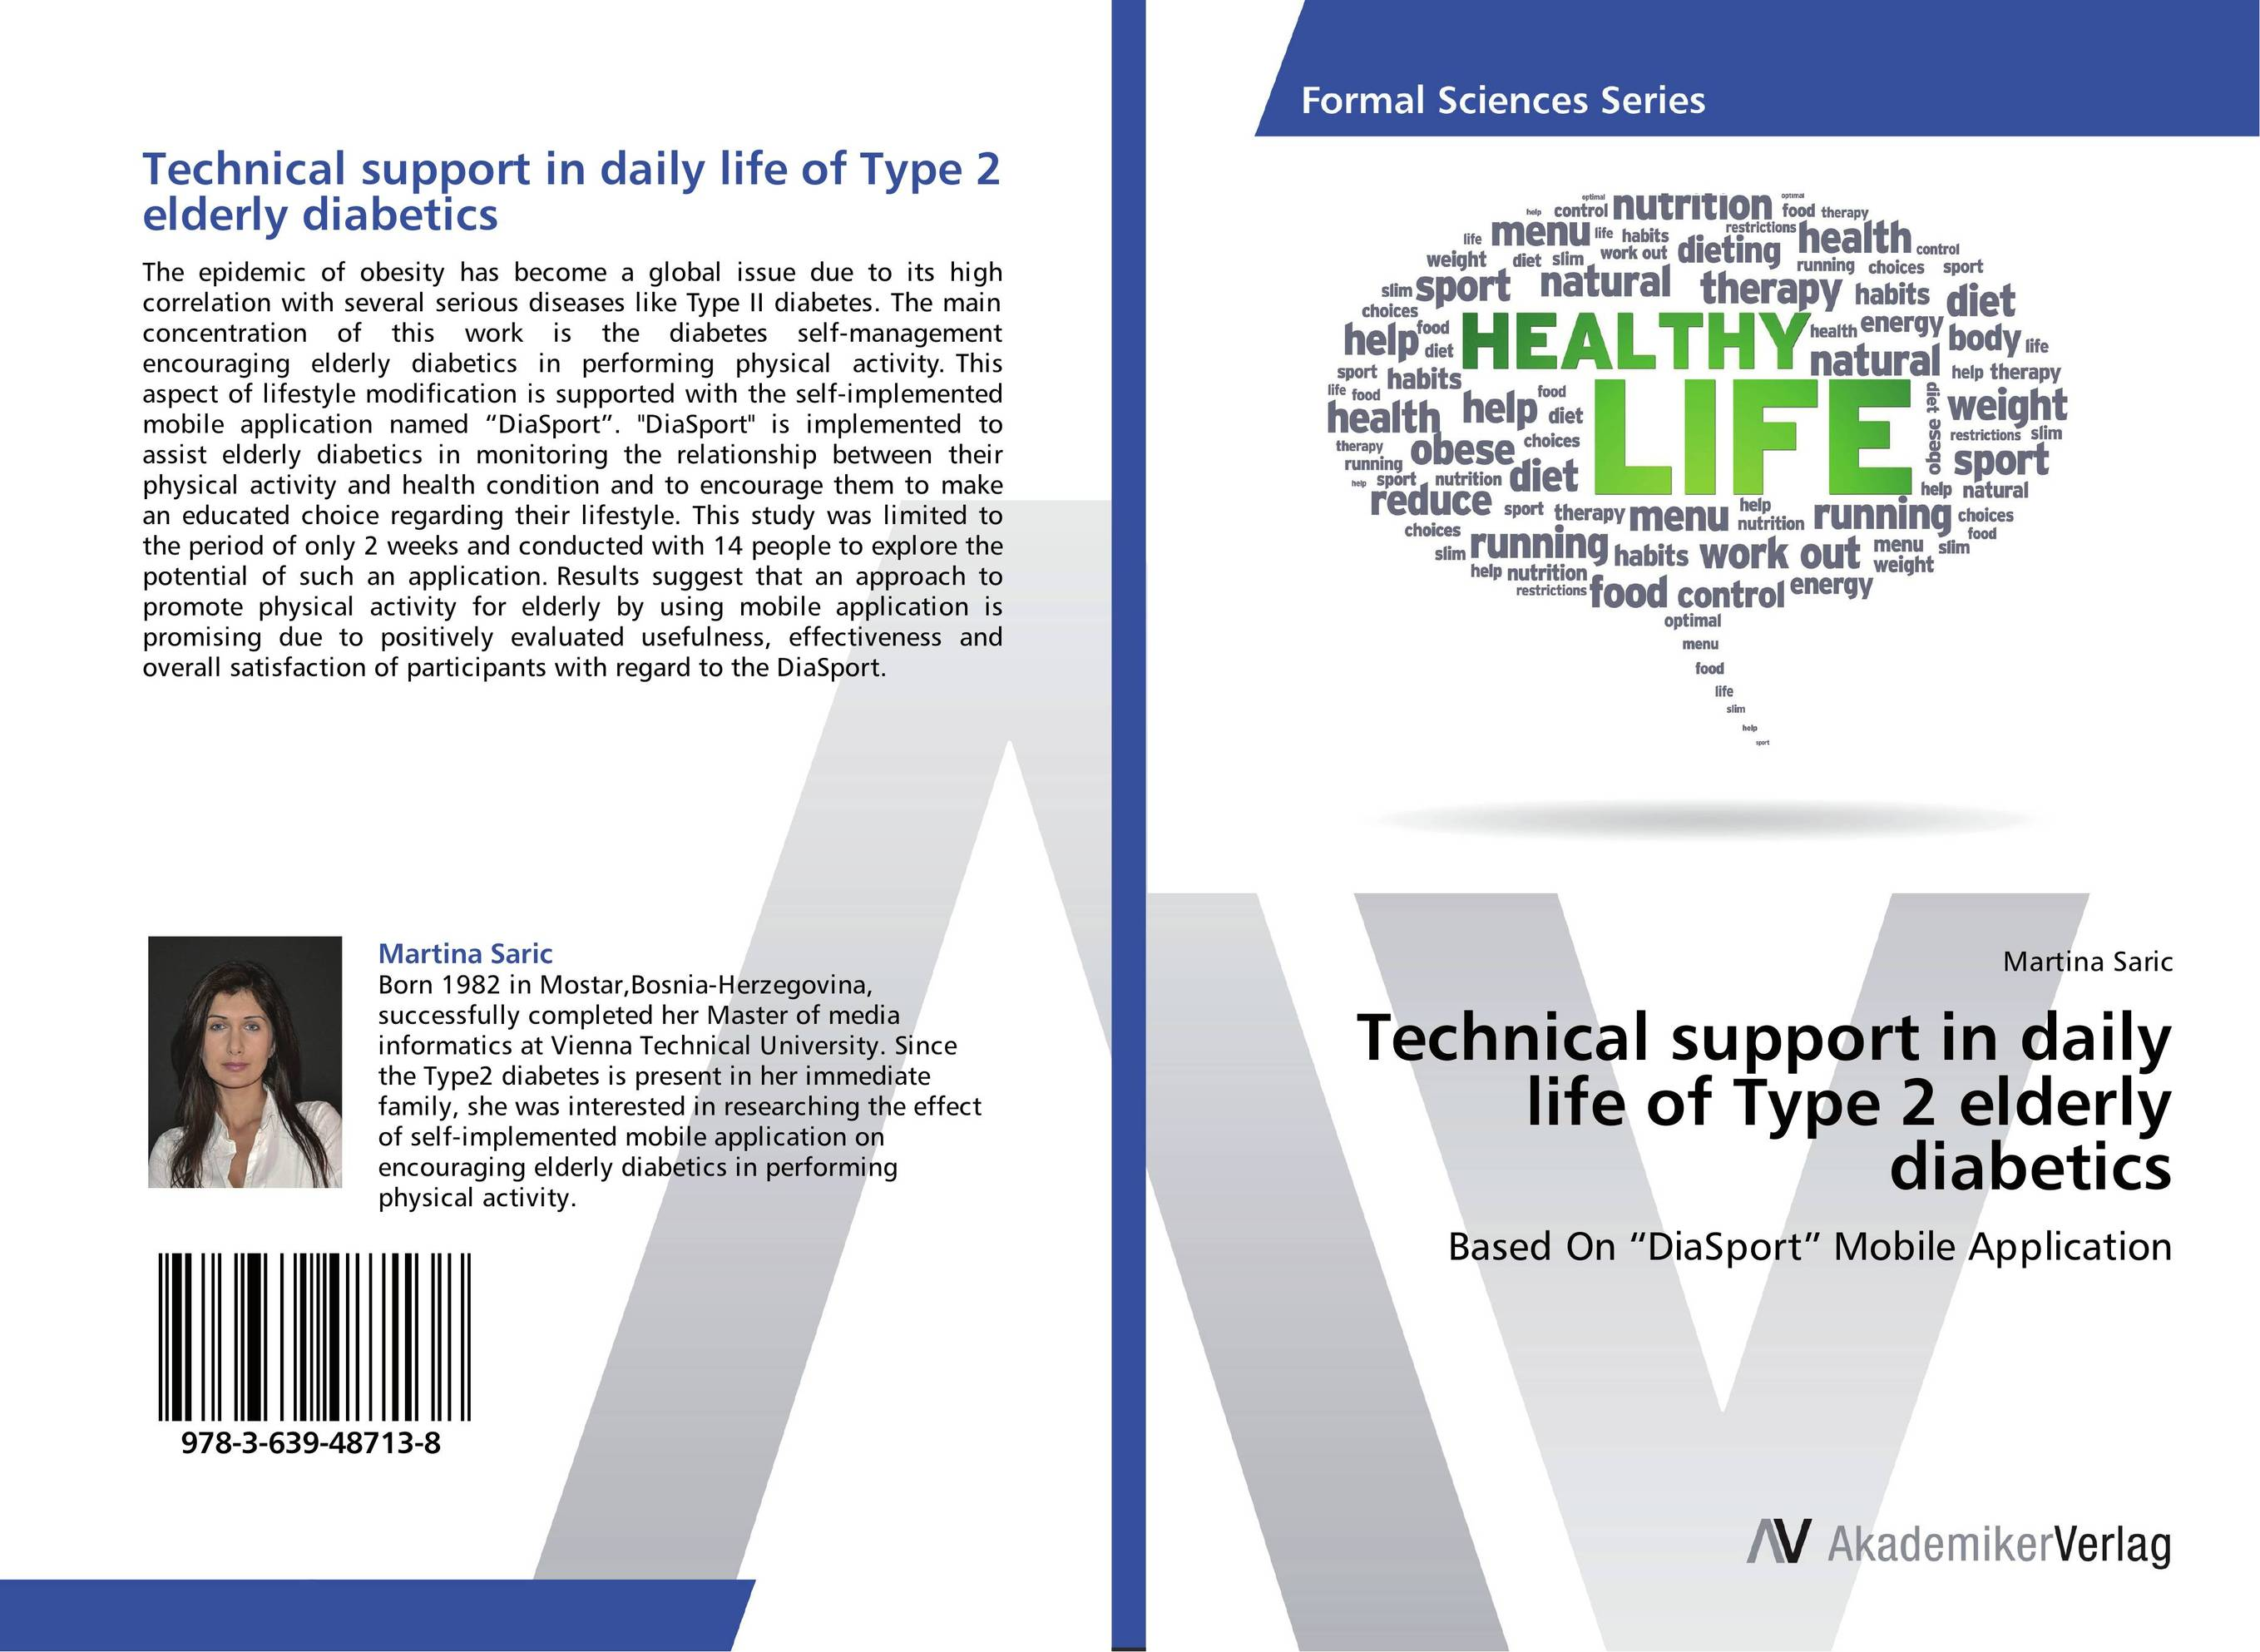 Technical support in daily life of Type 2 elderly diabetics effects of exercise in different temperatures in type 1 diabetics